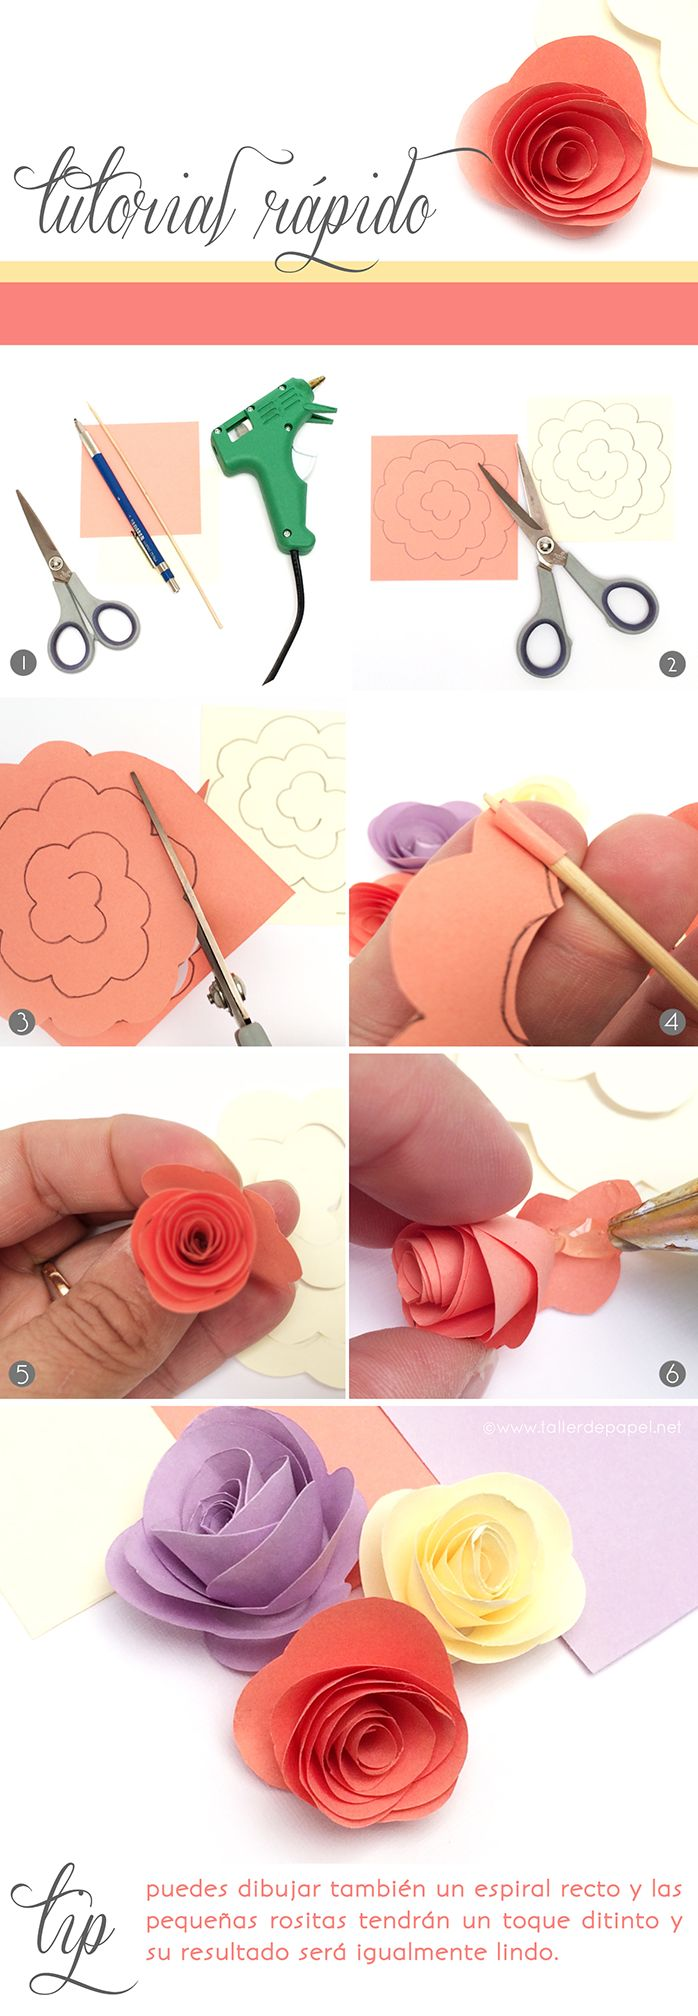 DIY Tutorial Rápido: Hoy como hacer mini rositas de papel! Sigue este simple paso a paso :) - Crafting Practice